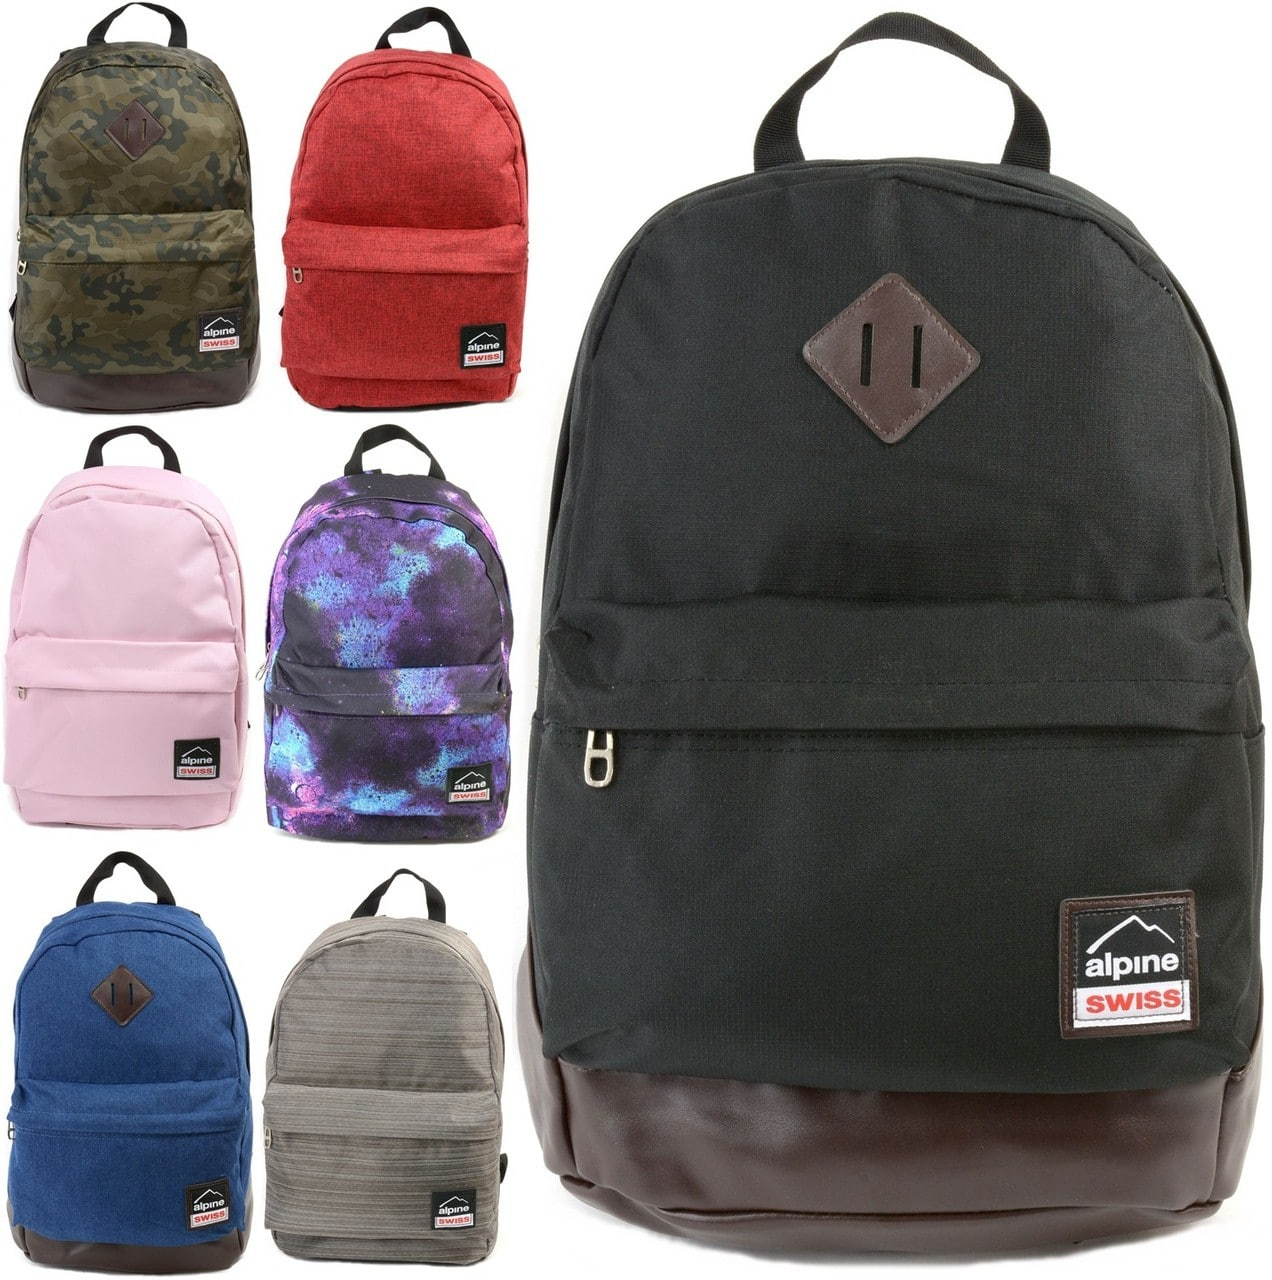 Alpine Swiss Midterm Backpack w  1-Year Warranty (various colors ... 6c8e12cbed5c6